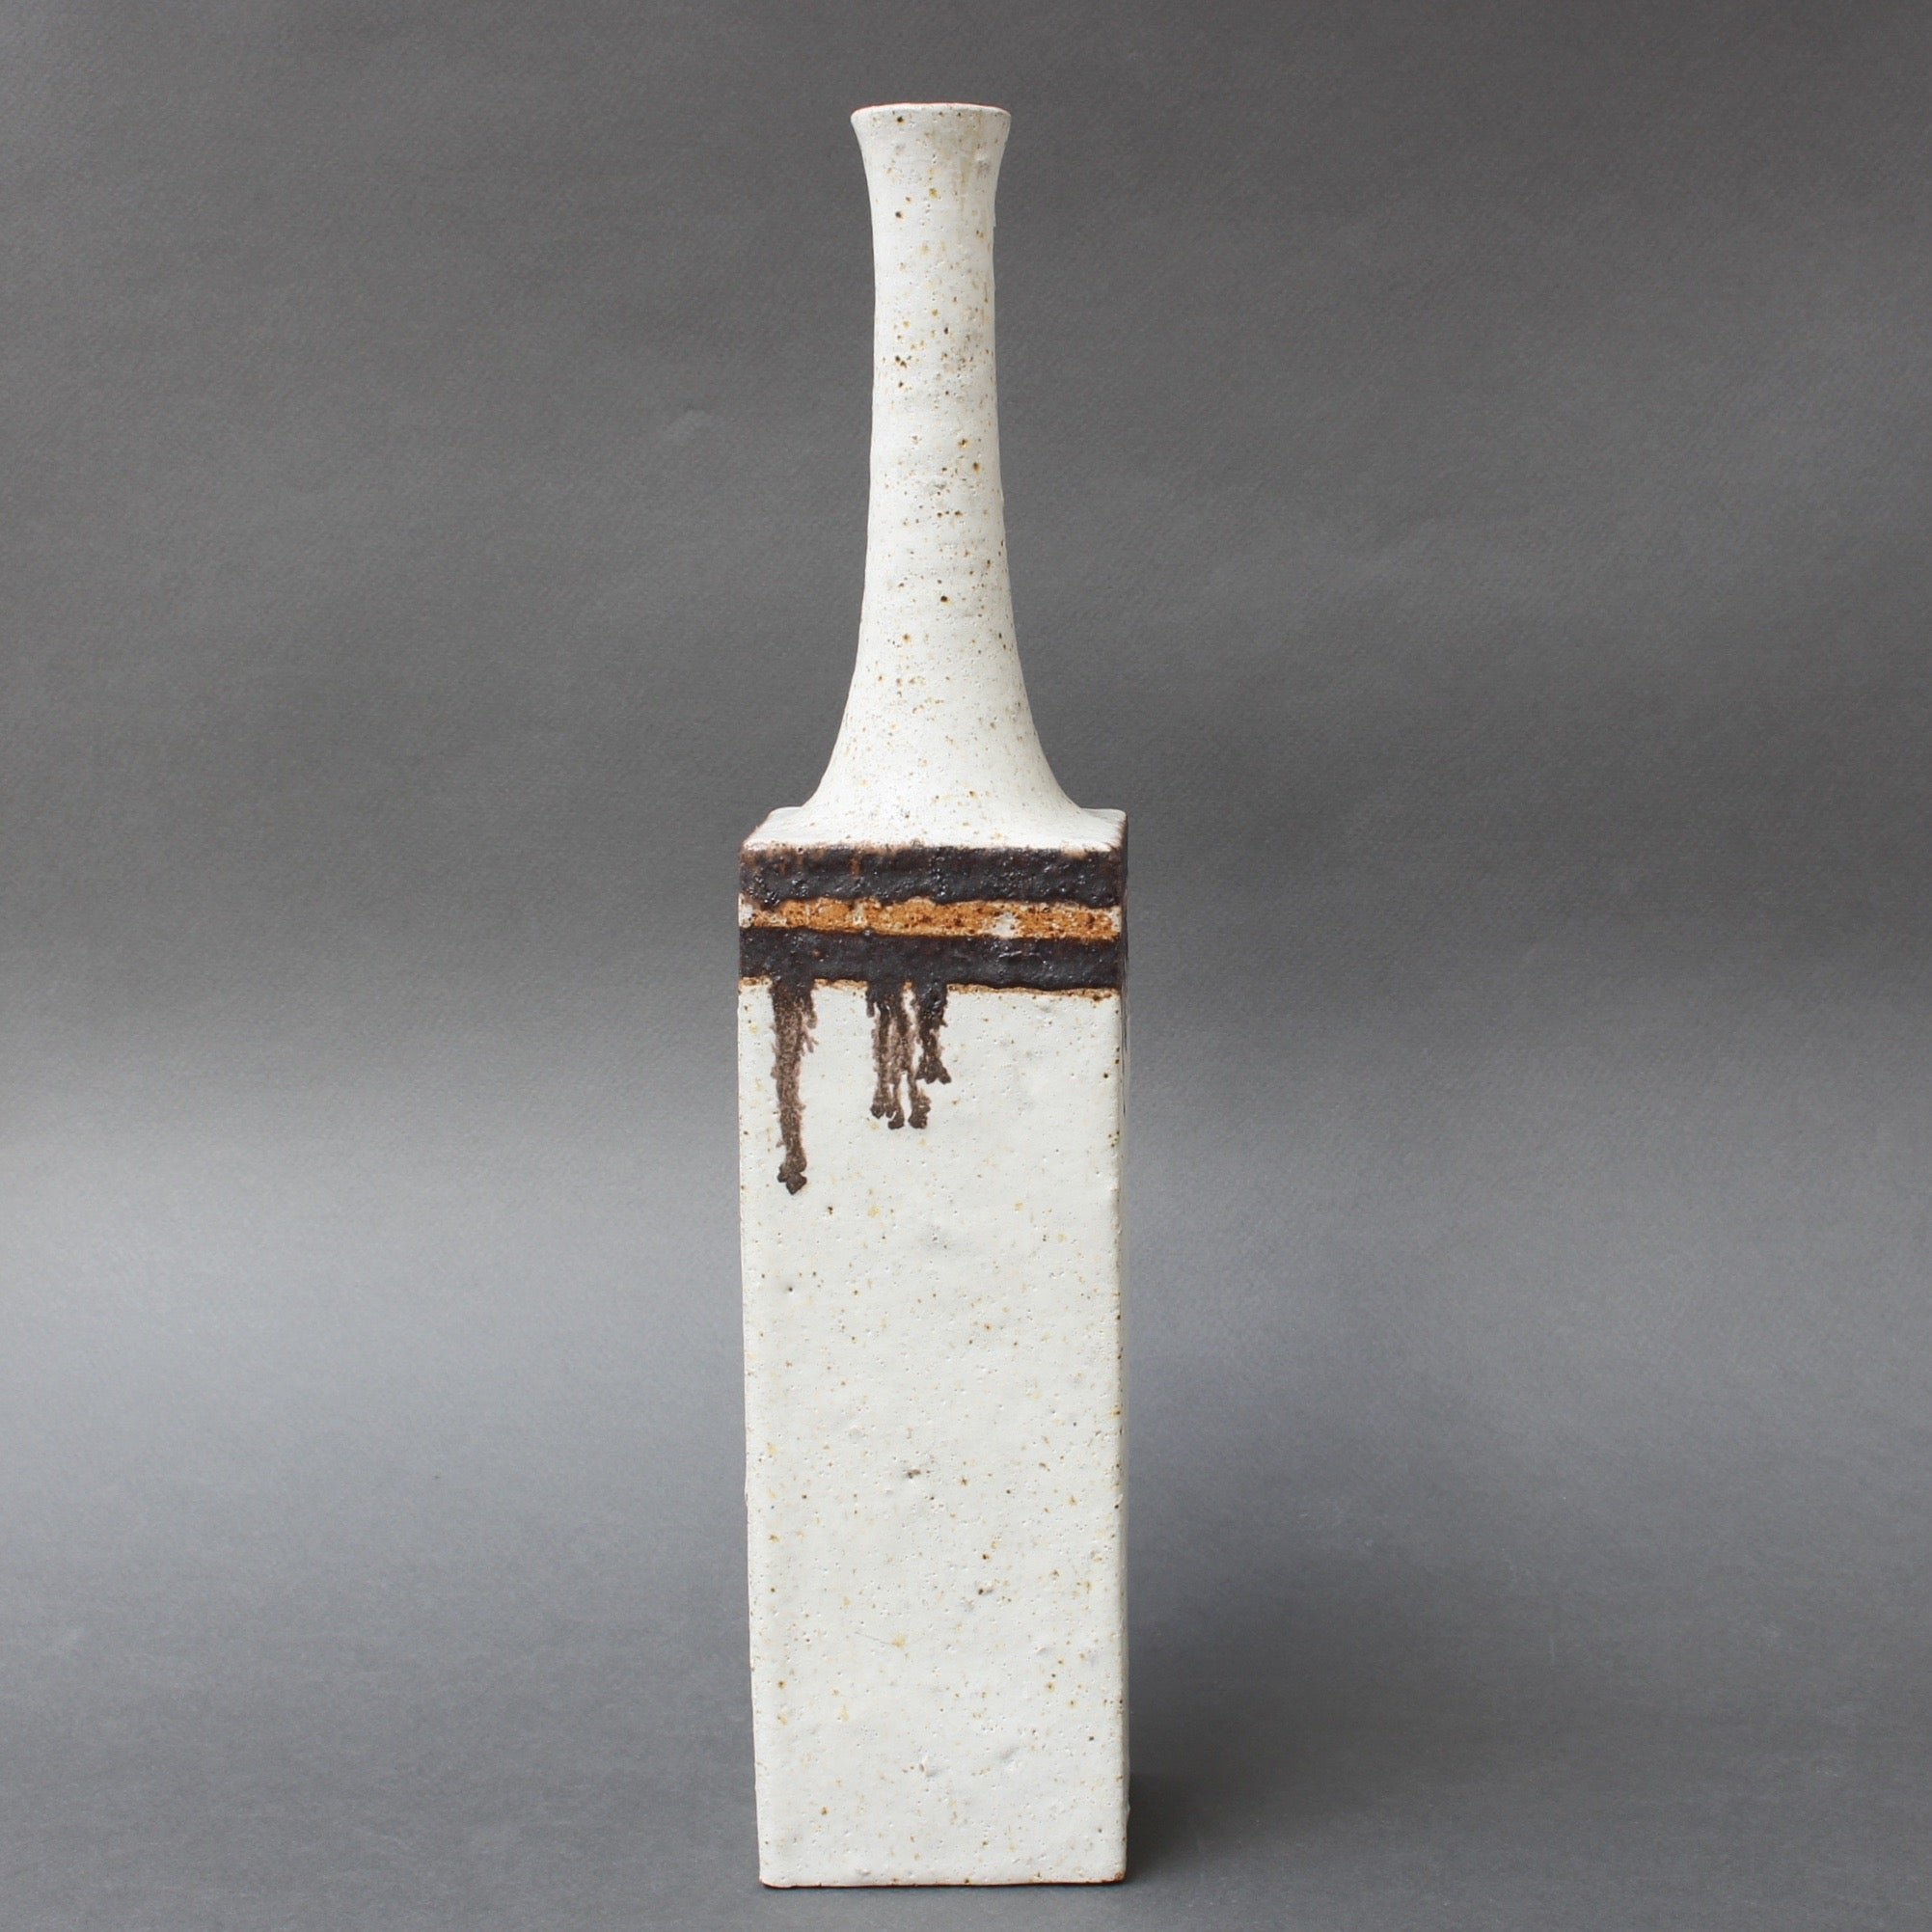 Ceramic Decorative Vase with Drip Motif by Bruno Gambone (circa 1970s)